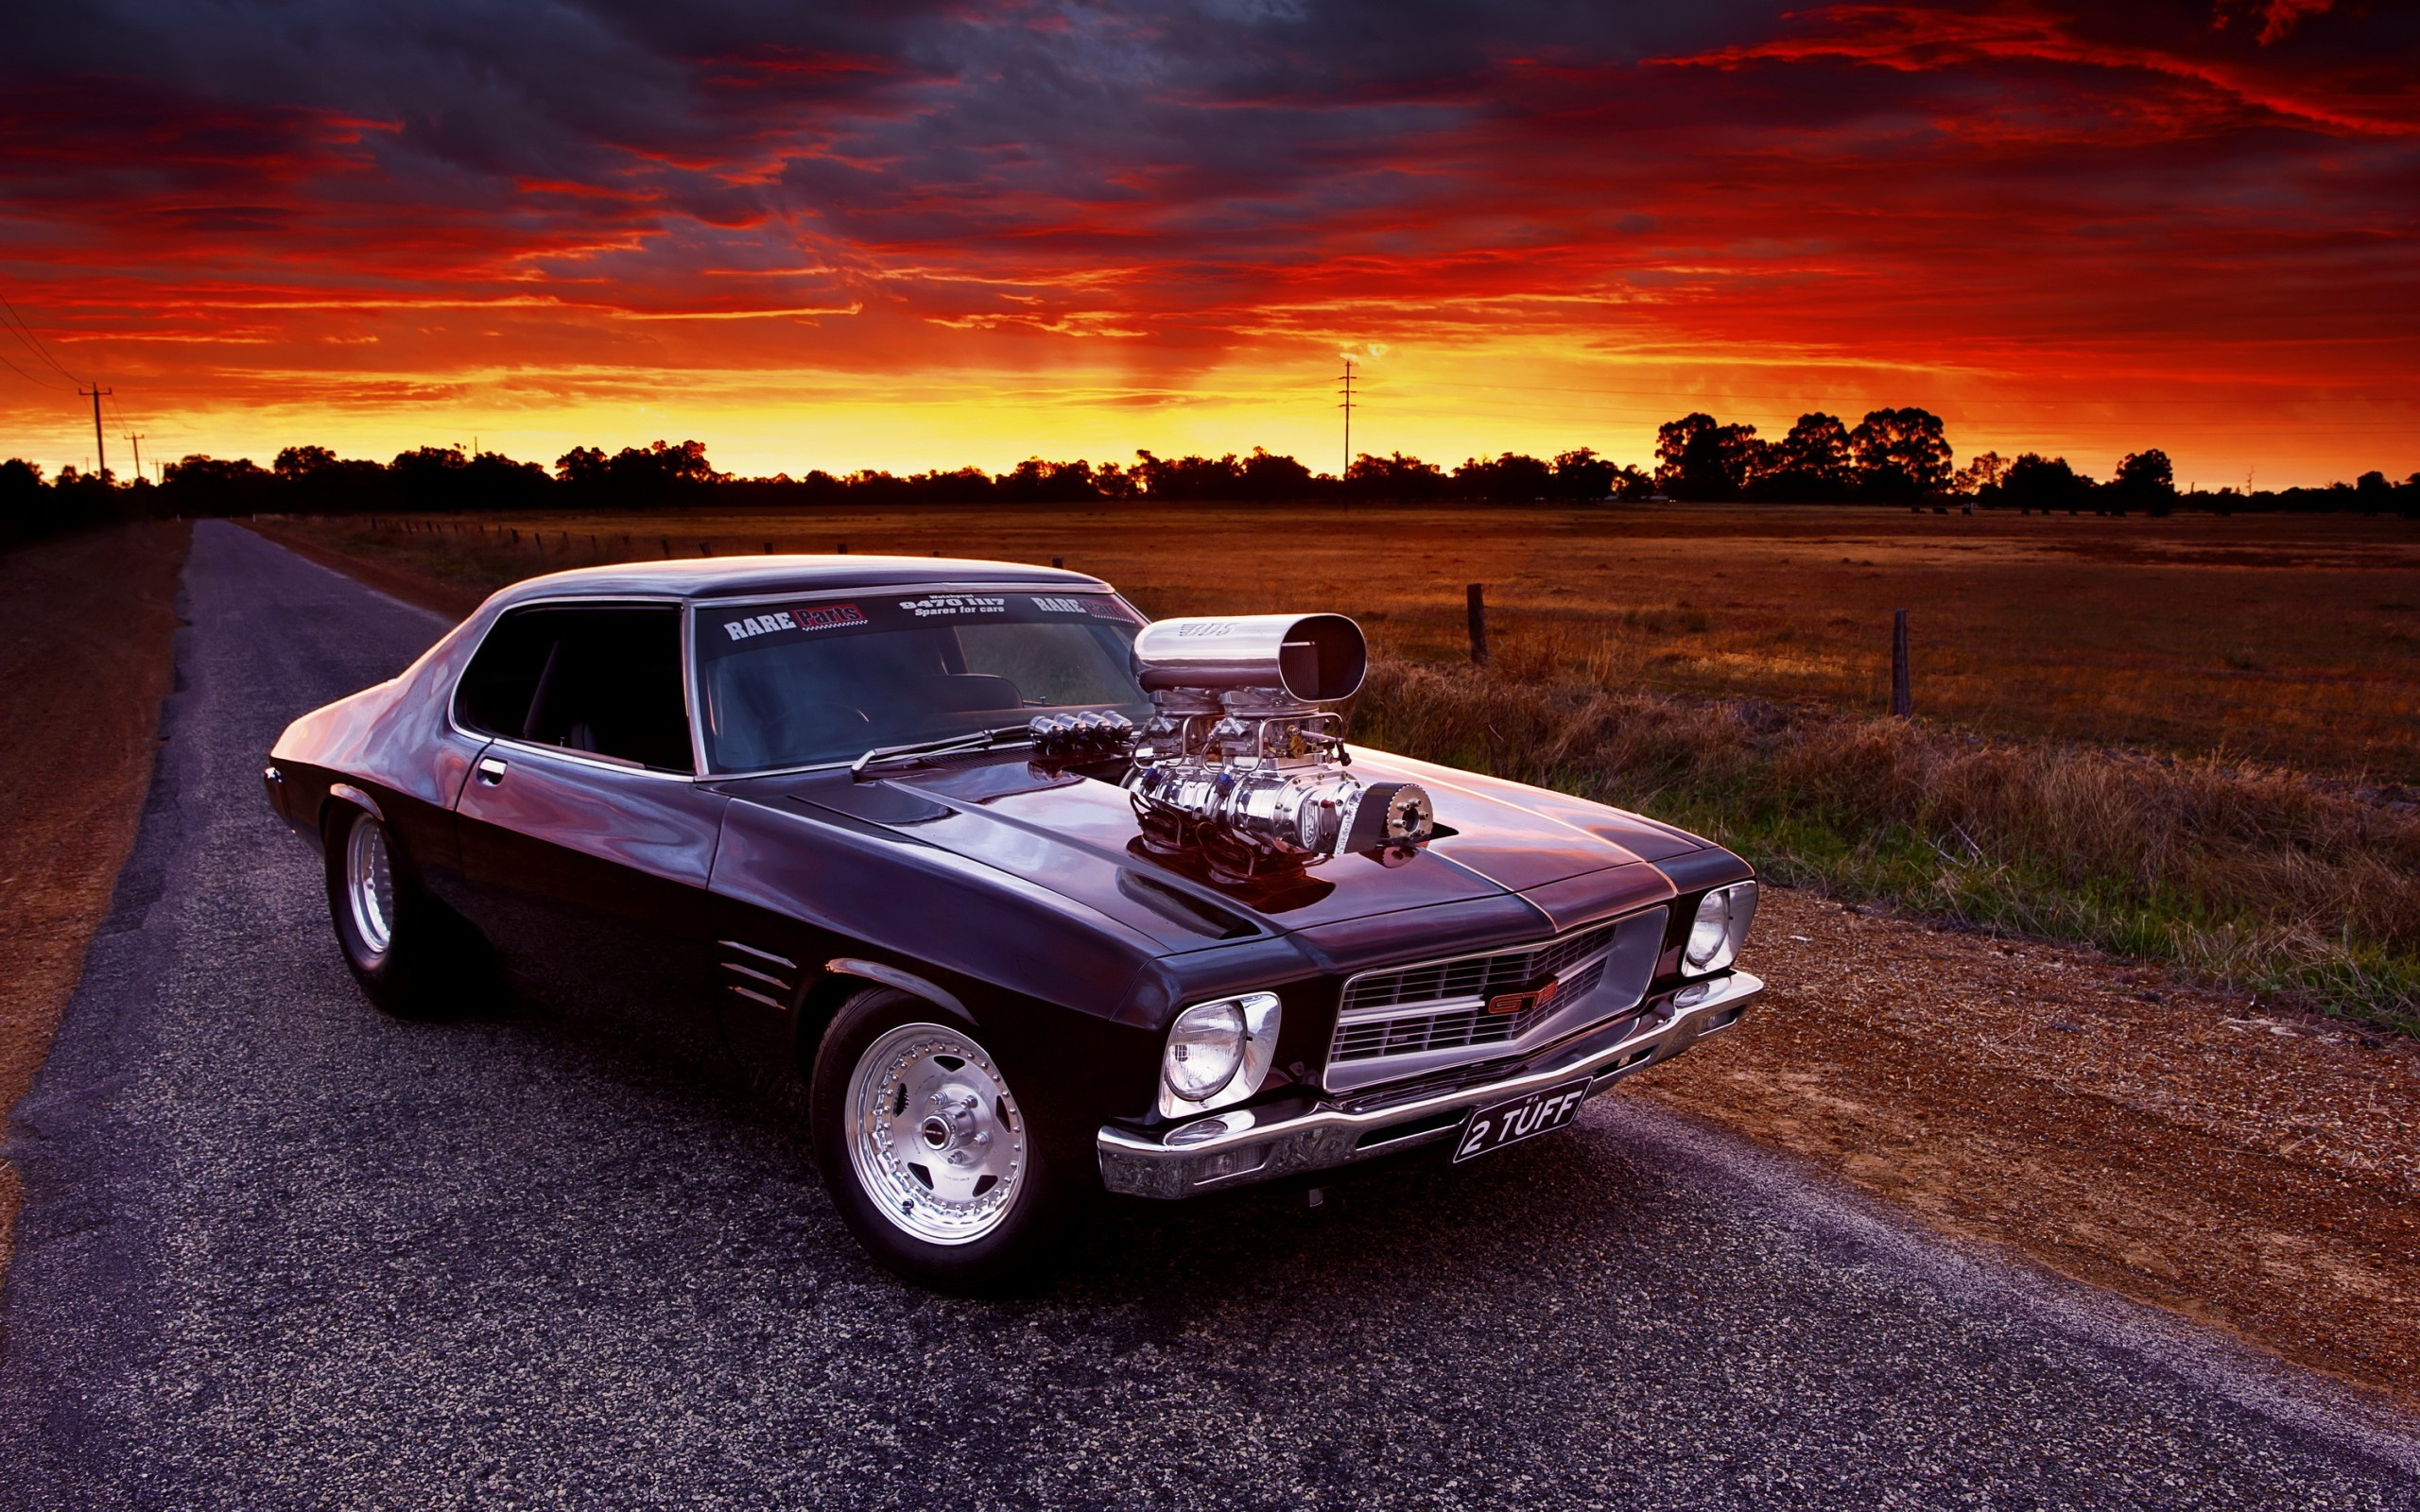 wallpaper cars muscle car images 1920x1080 Car Tuning 2560x1600